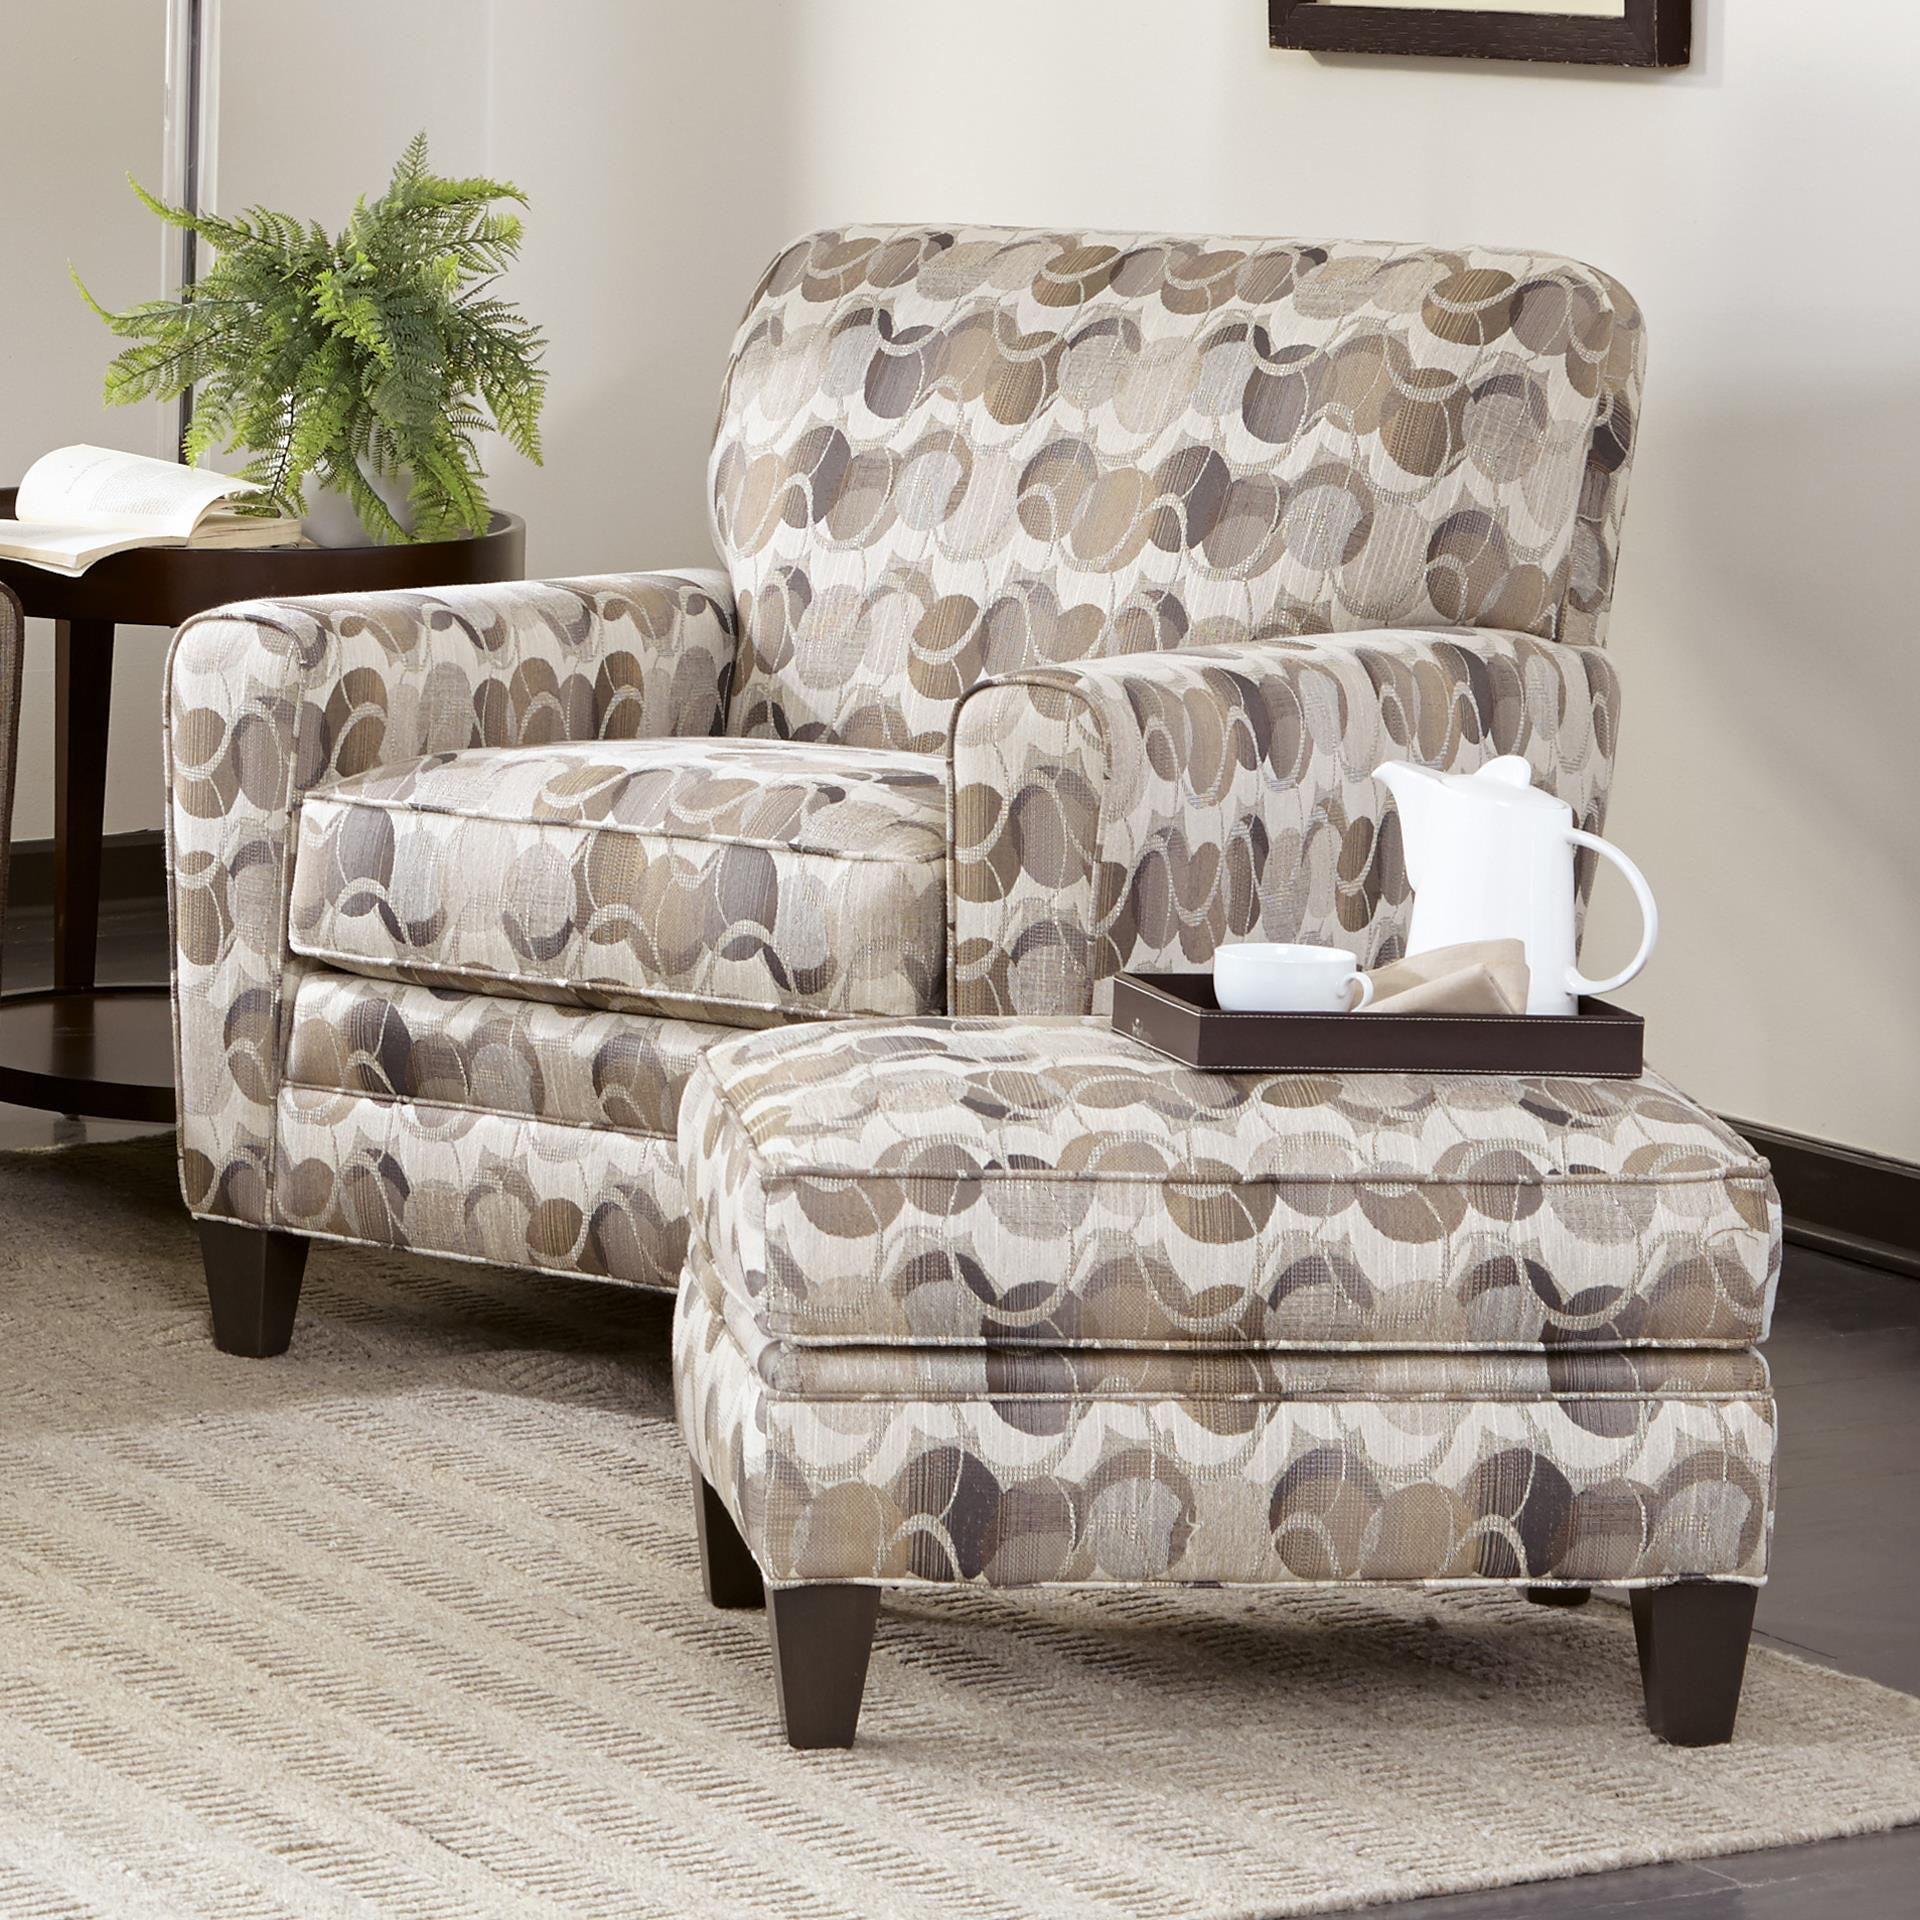 225 Chair & Ottoman Set by Smith Brothers at Coconis Furniture & Mattress 1st